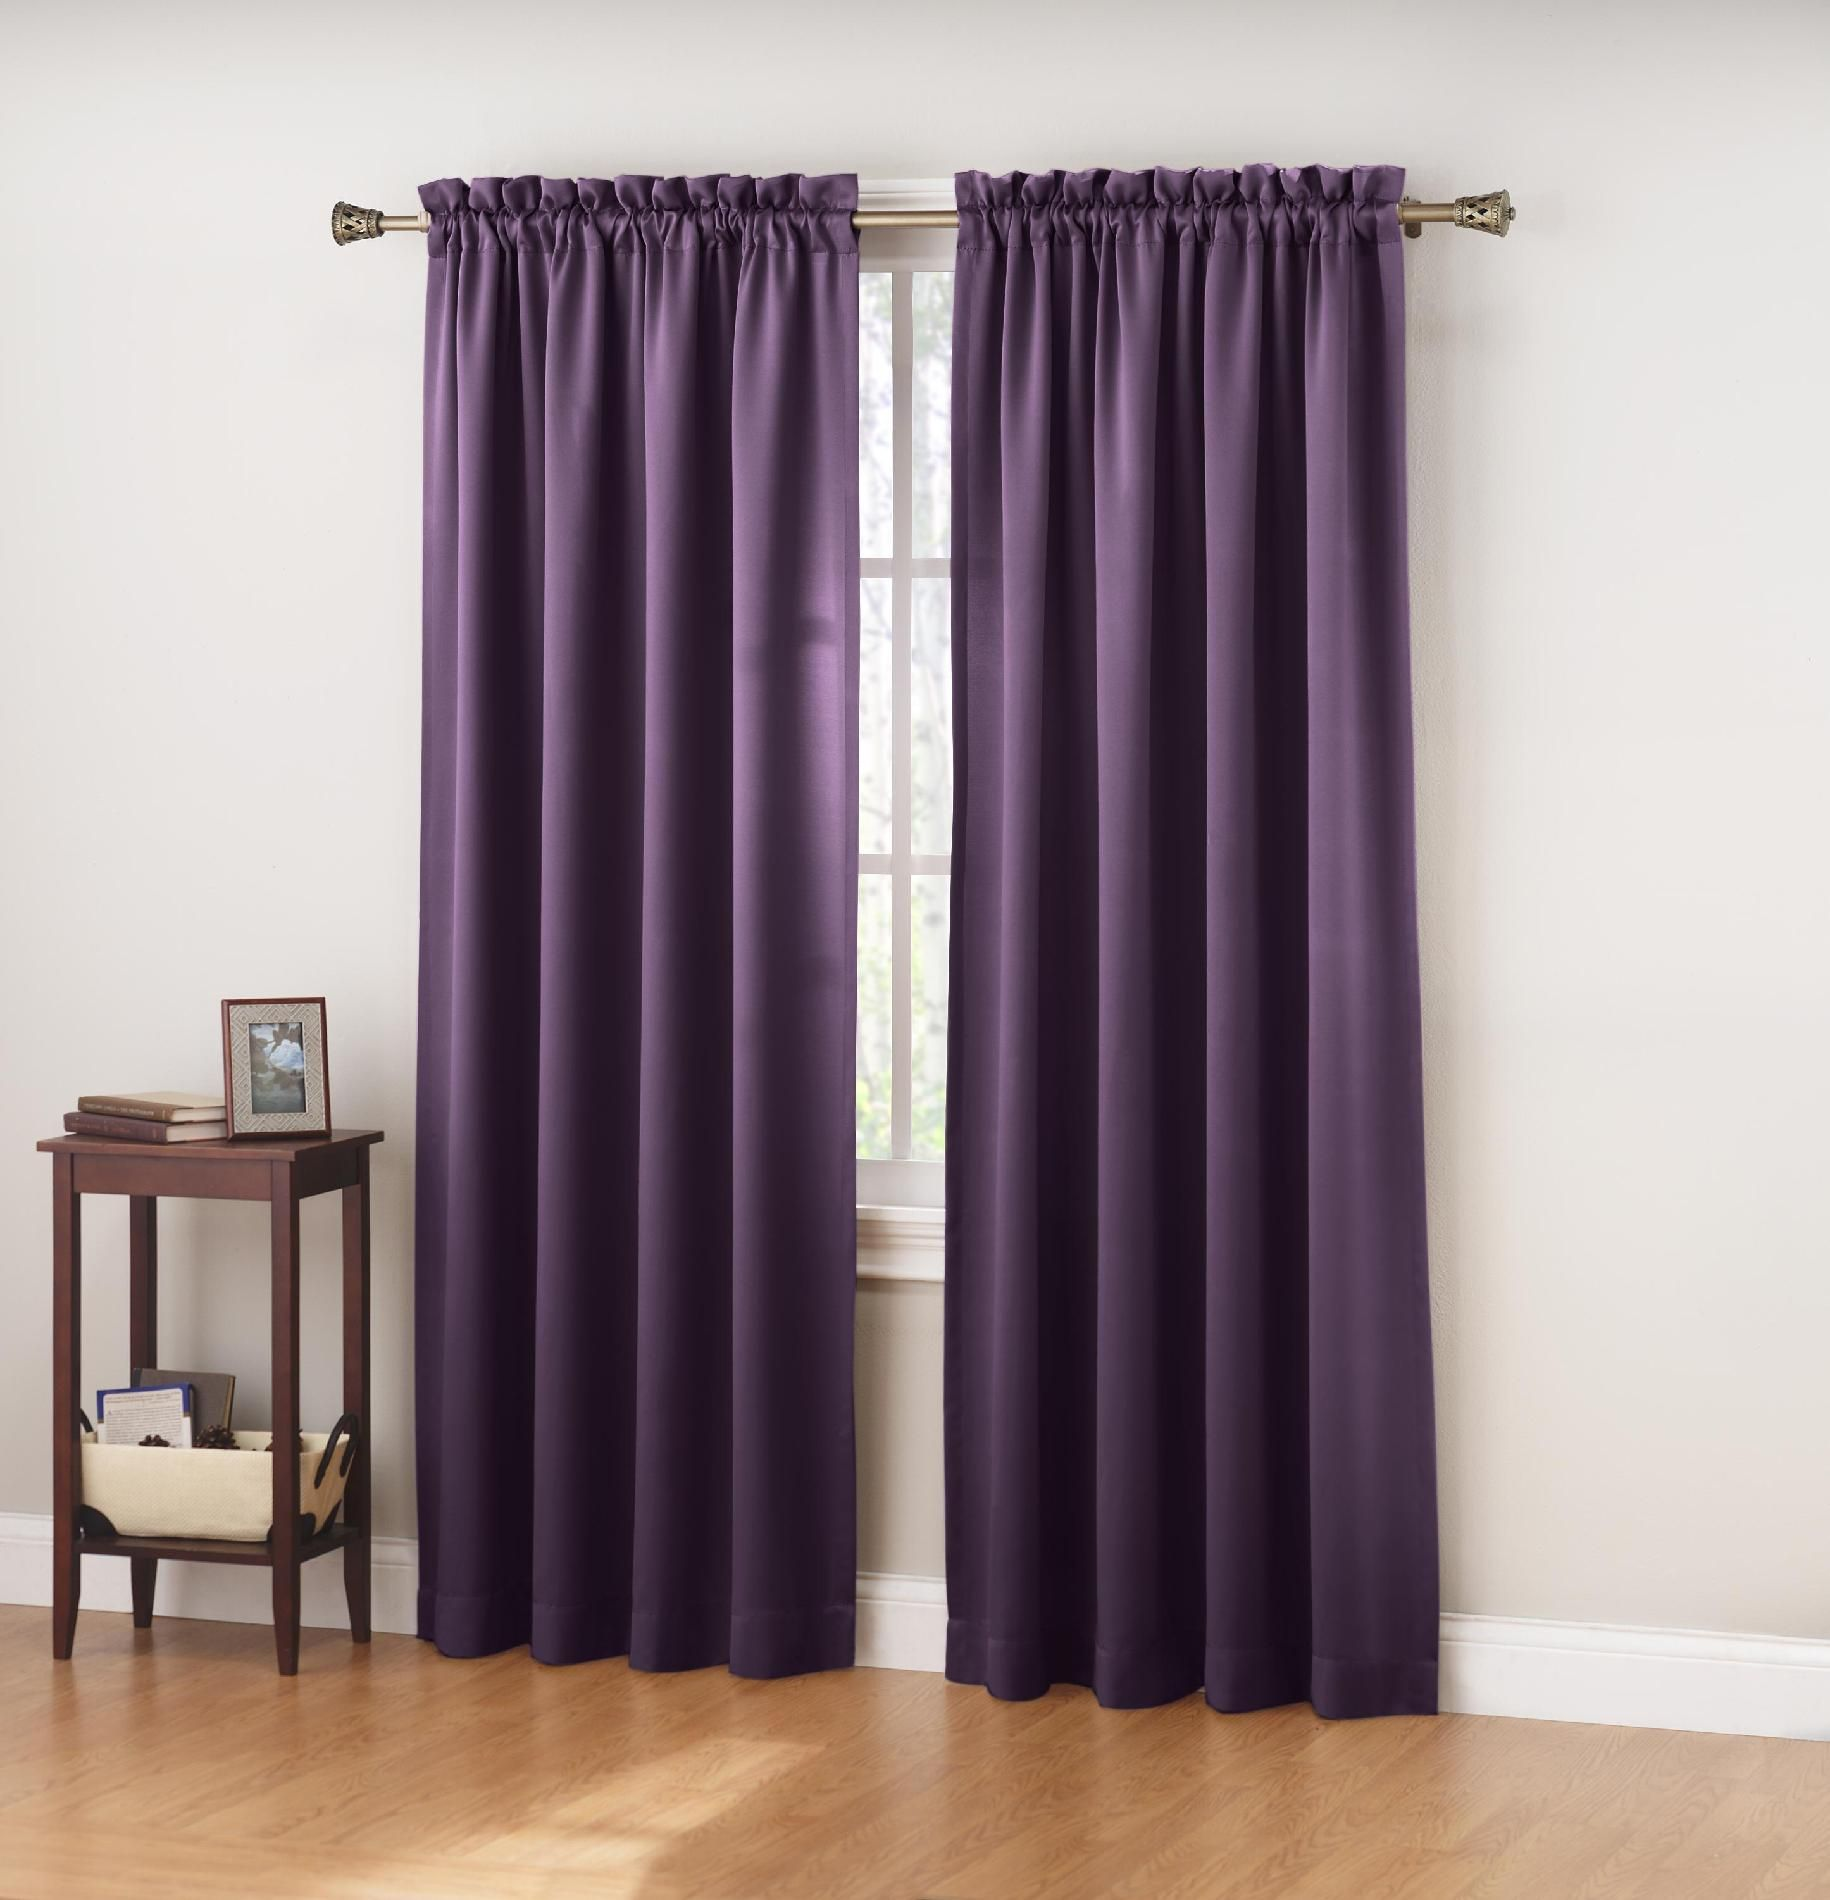 Pin by julie whalen on curtain ideas for new house pinterest